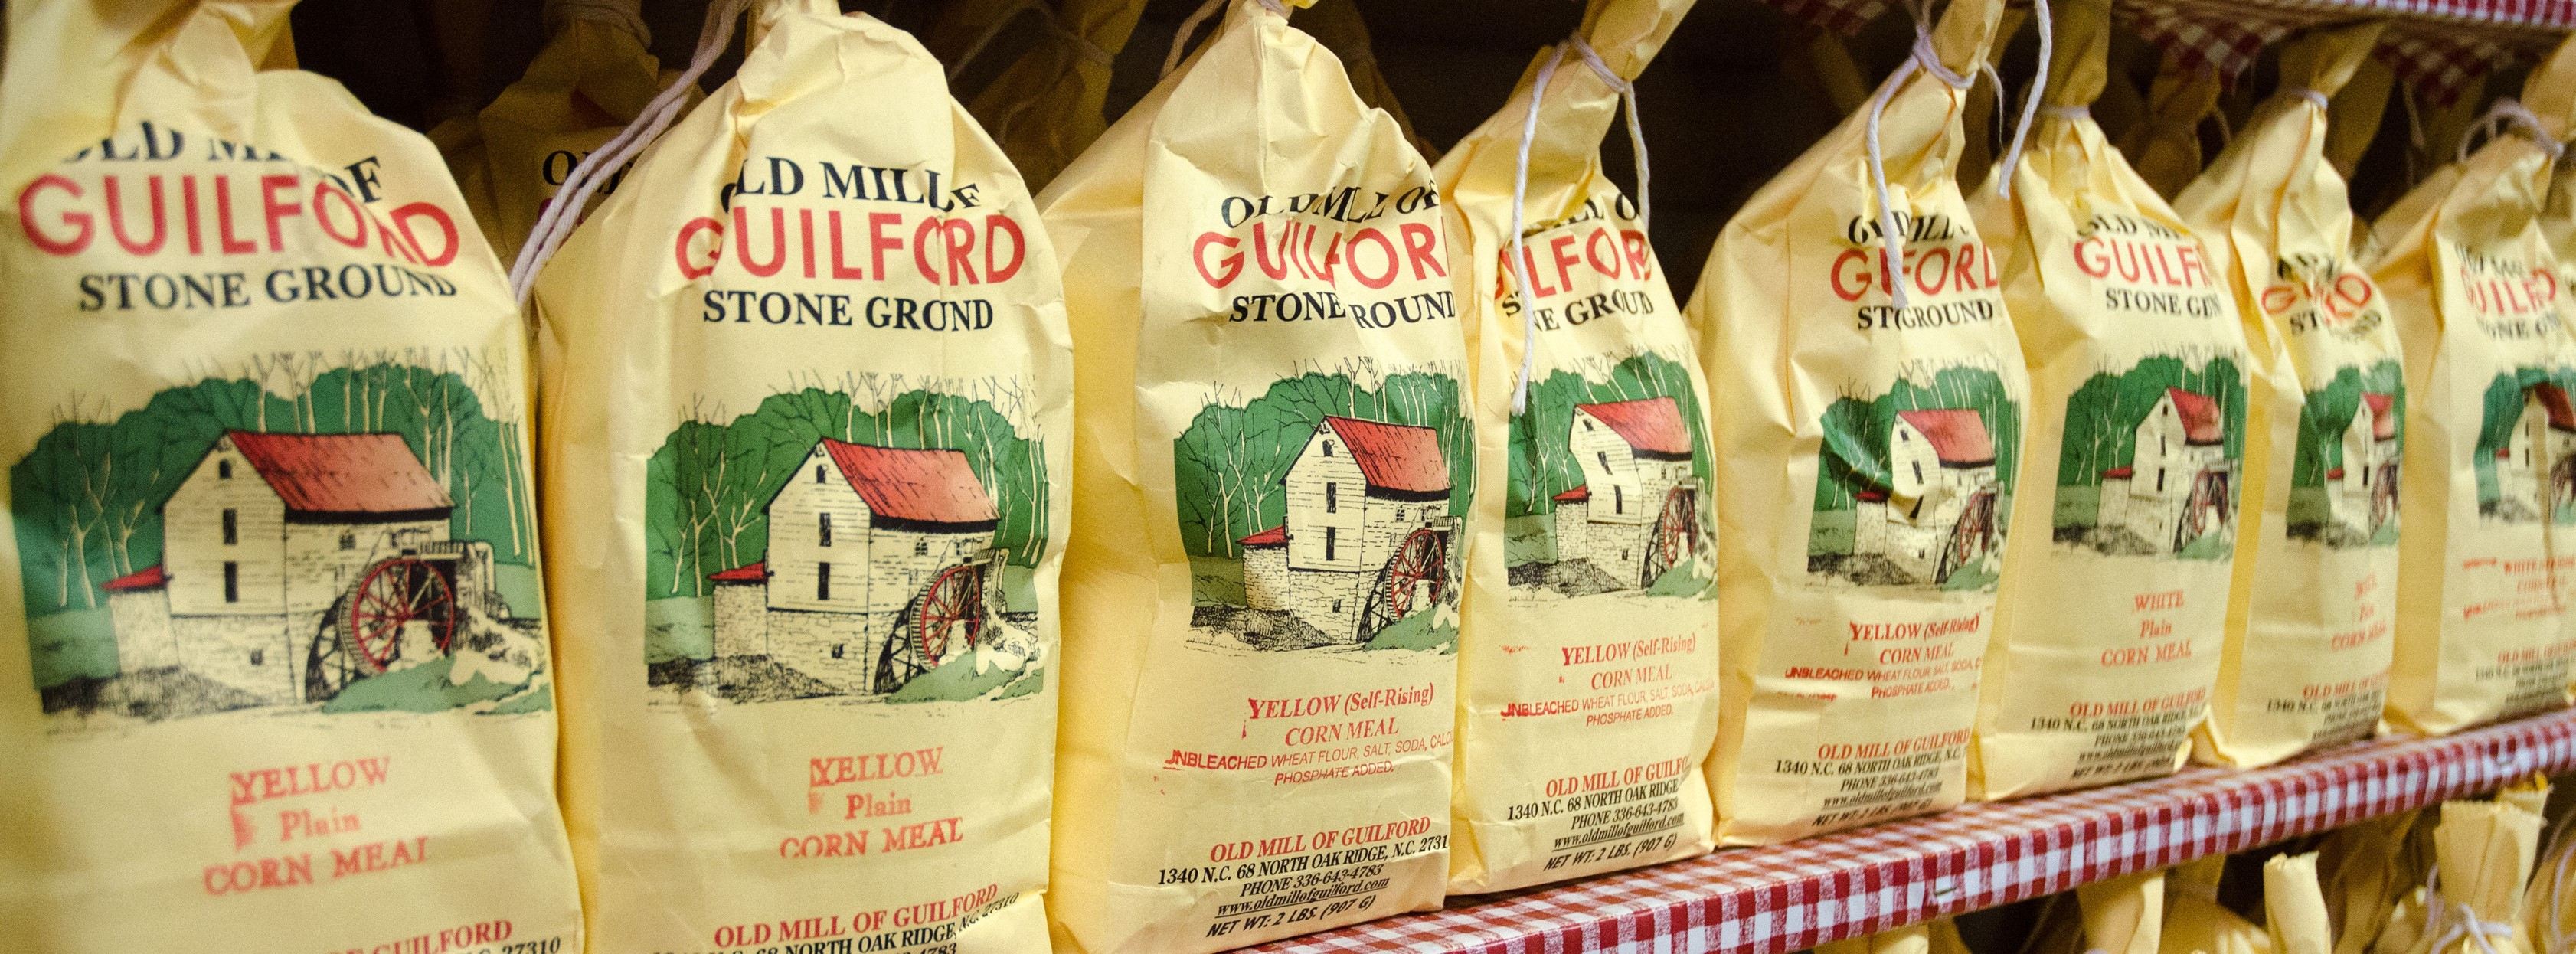 Mast General Store offers a selection of Carolina grits and meals.